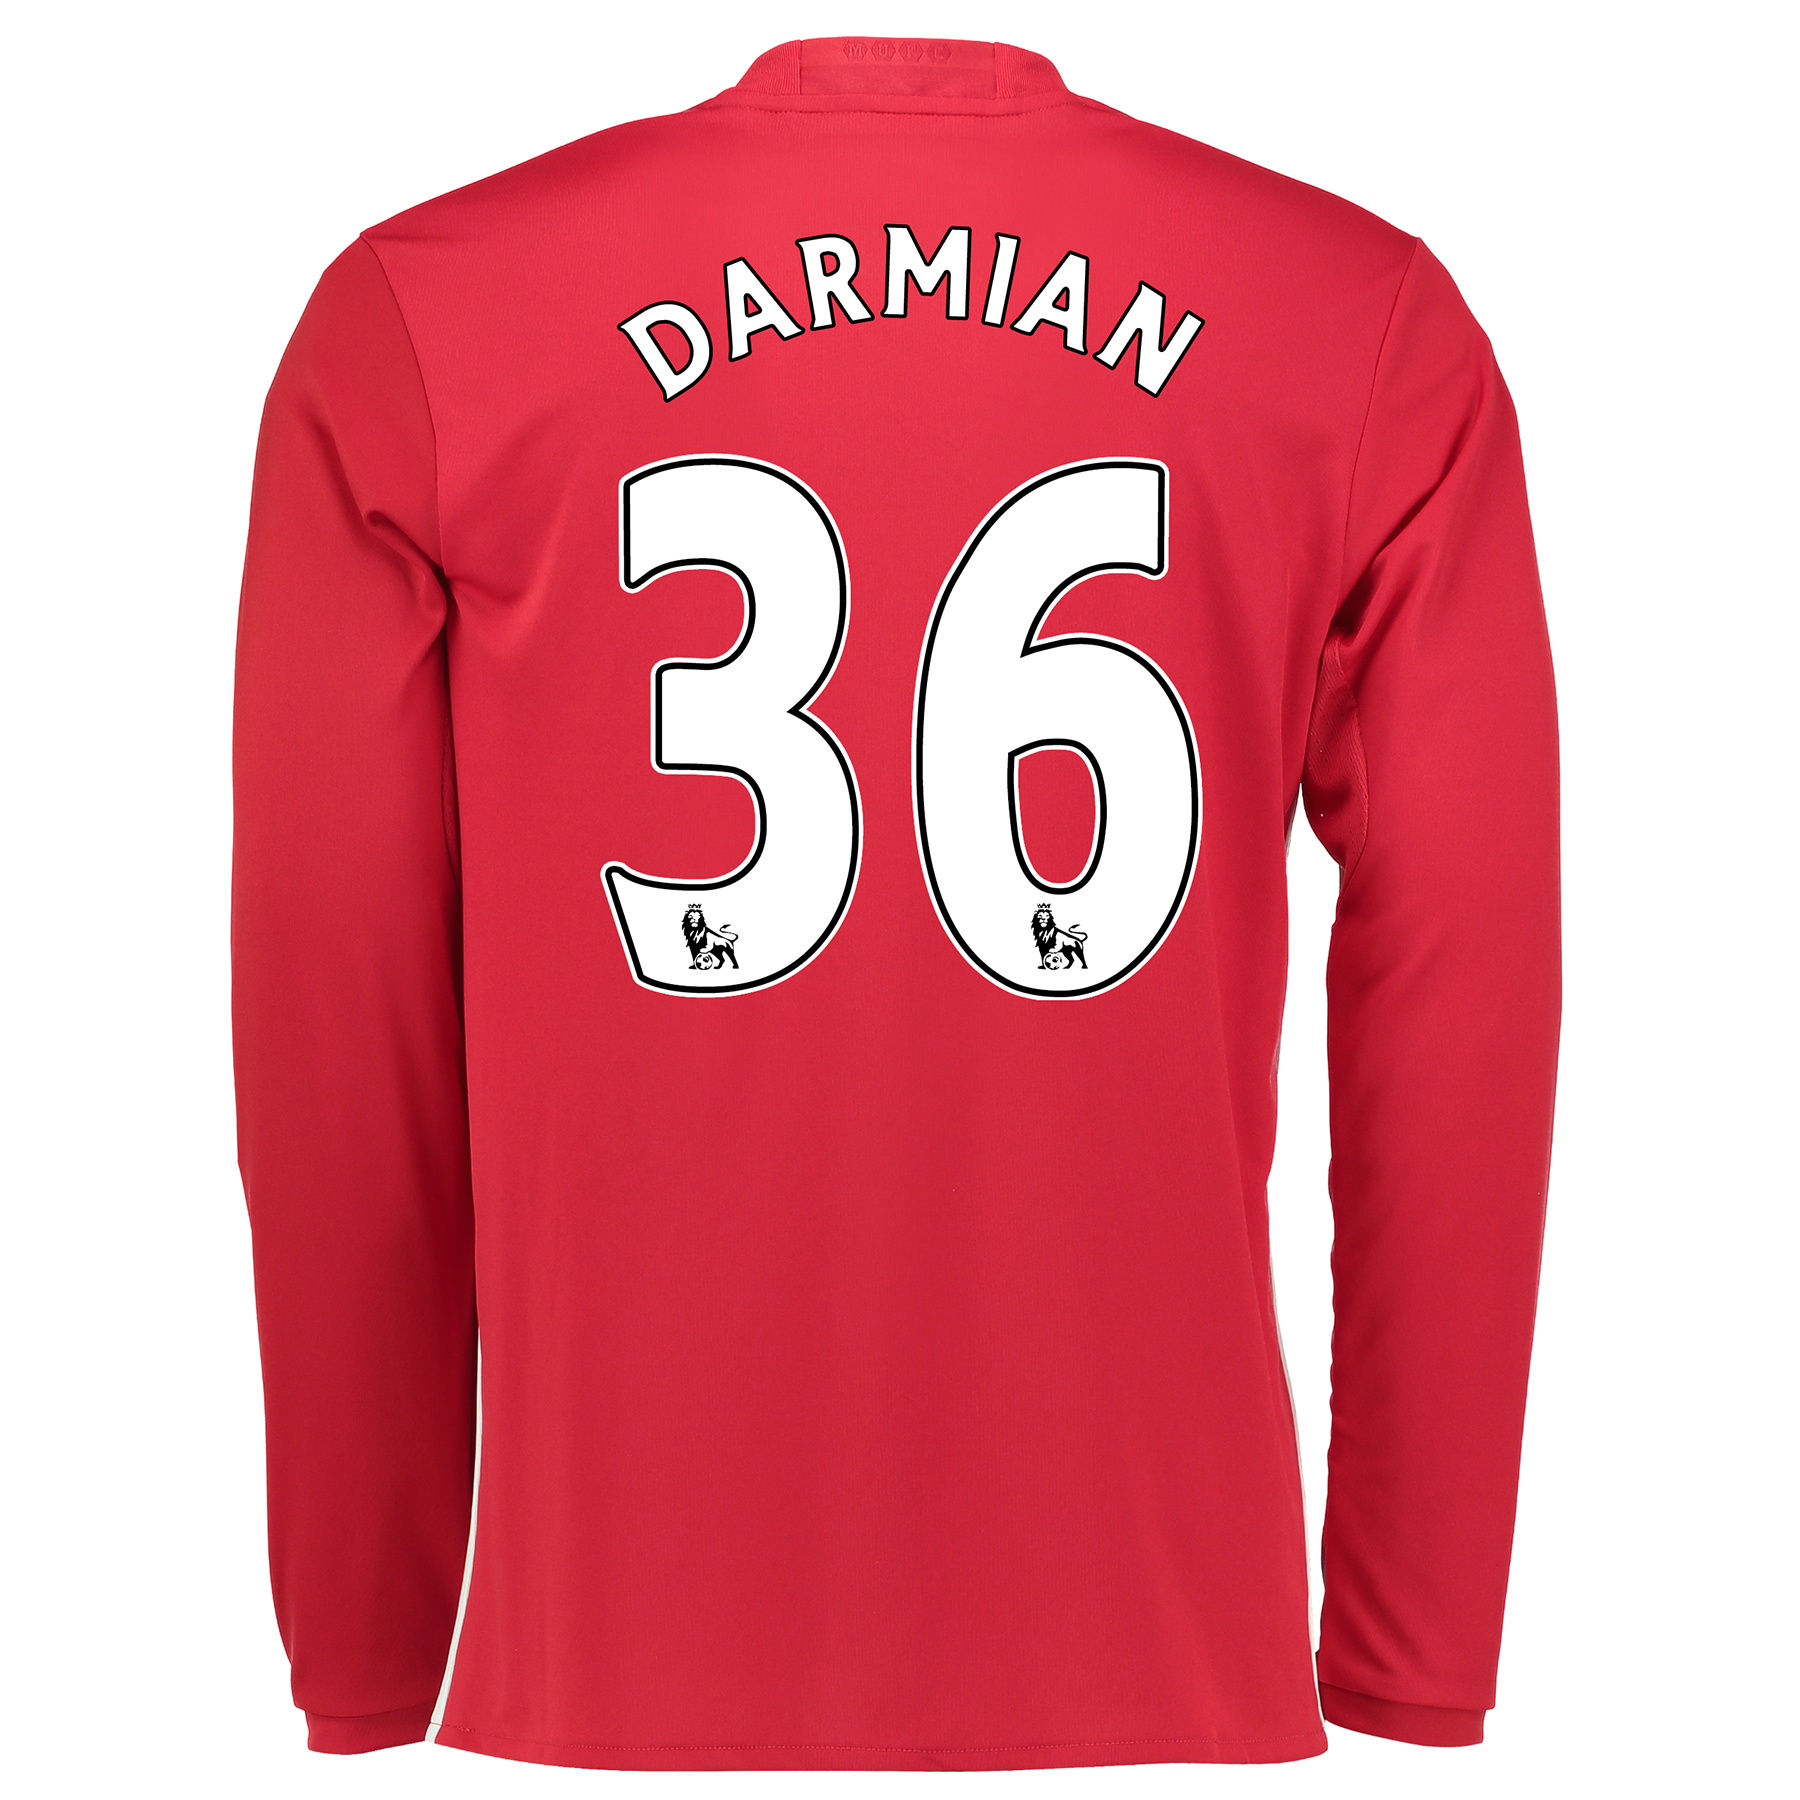 Manchester United Home Shirt 2016-17 - Long Sleeve with Darmian 36 pri